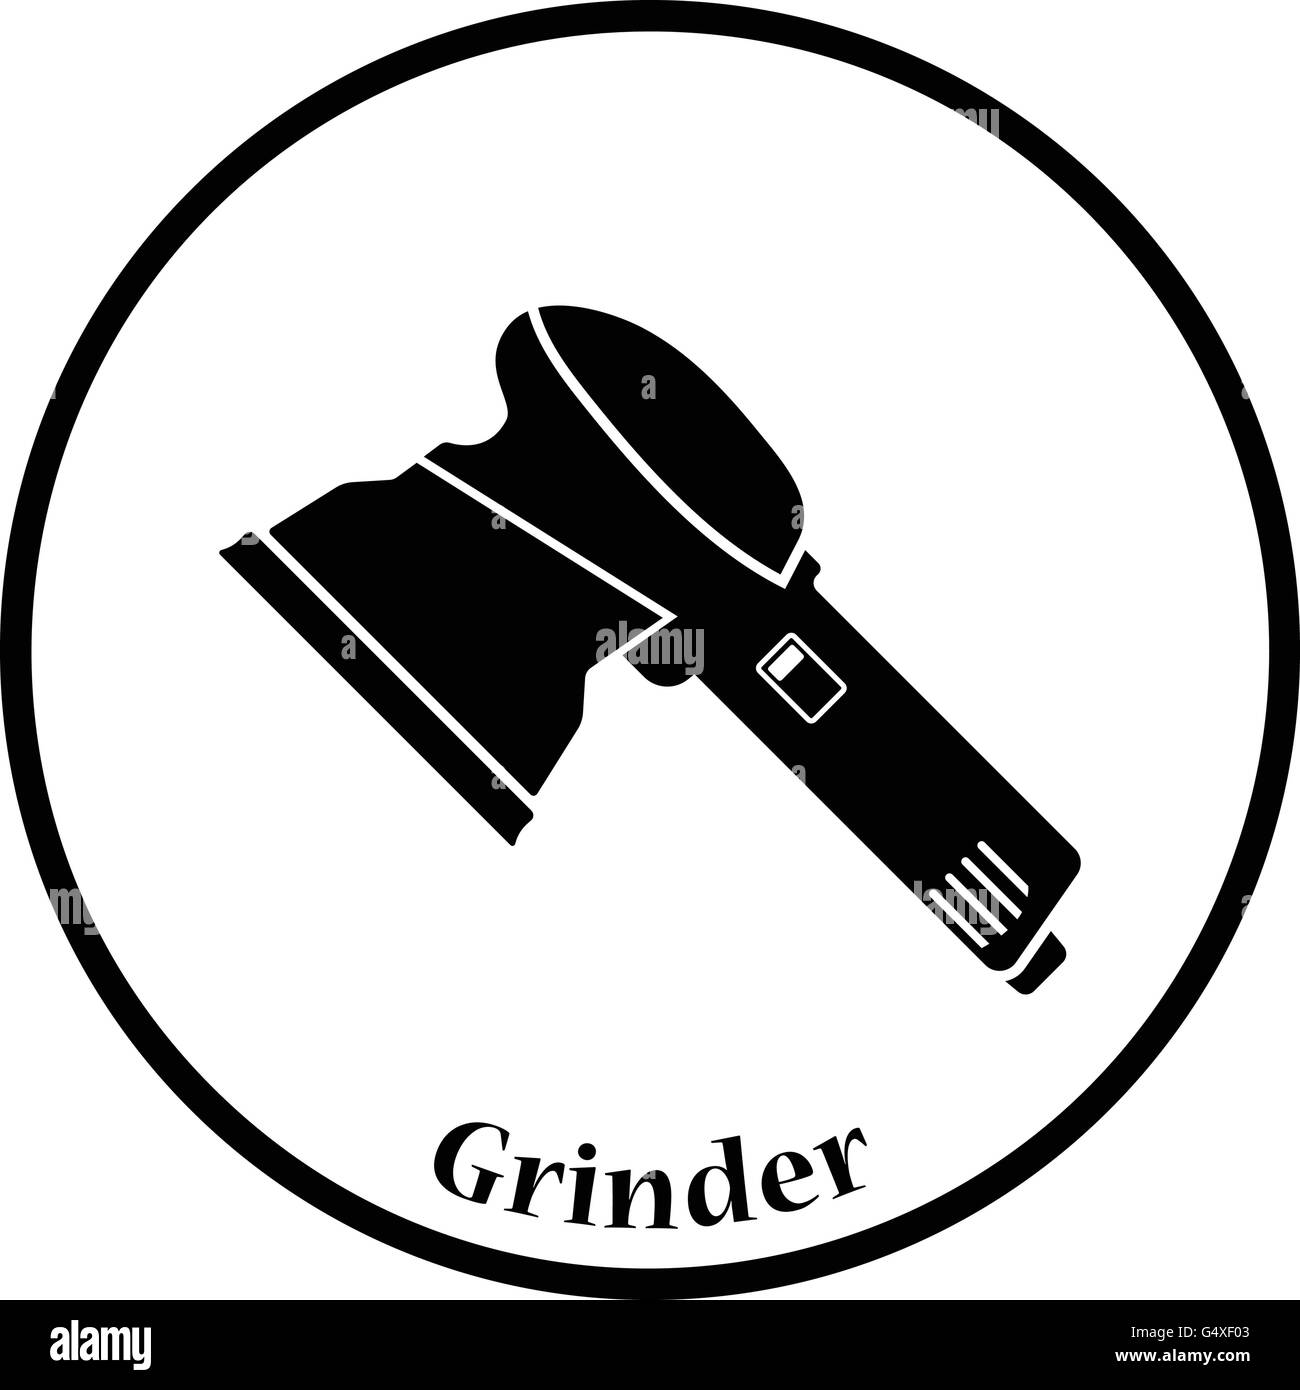 Icon of grinder. Thin circle design. Vector illustration. - Stock Image